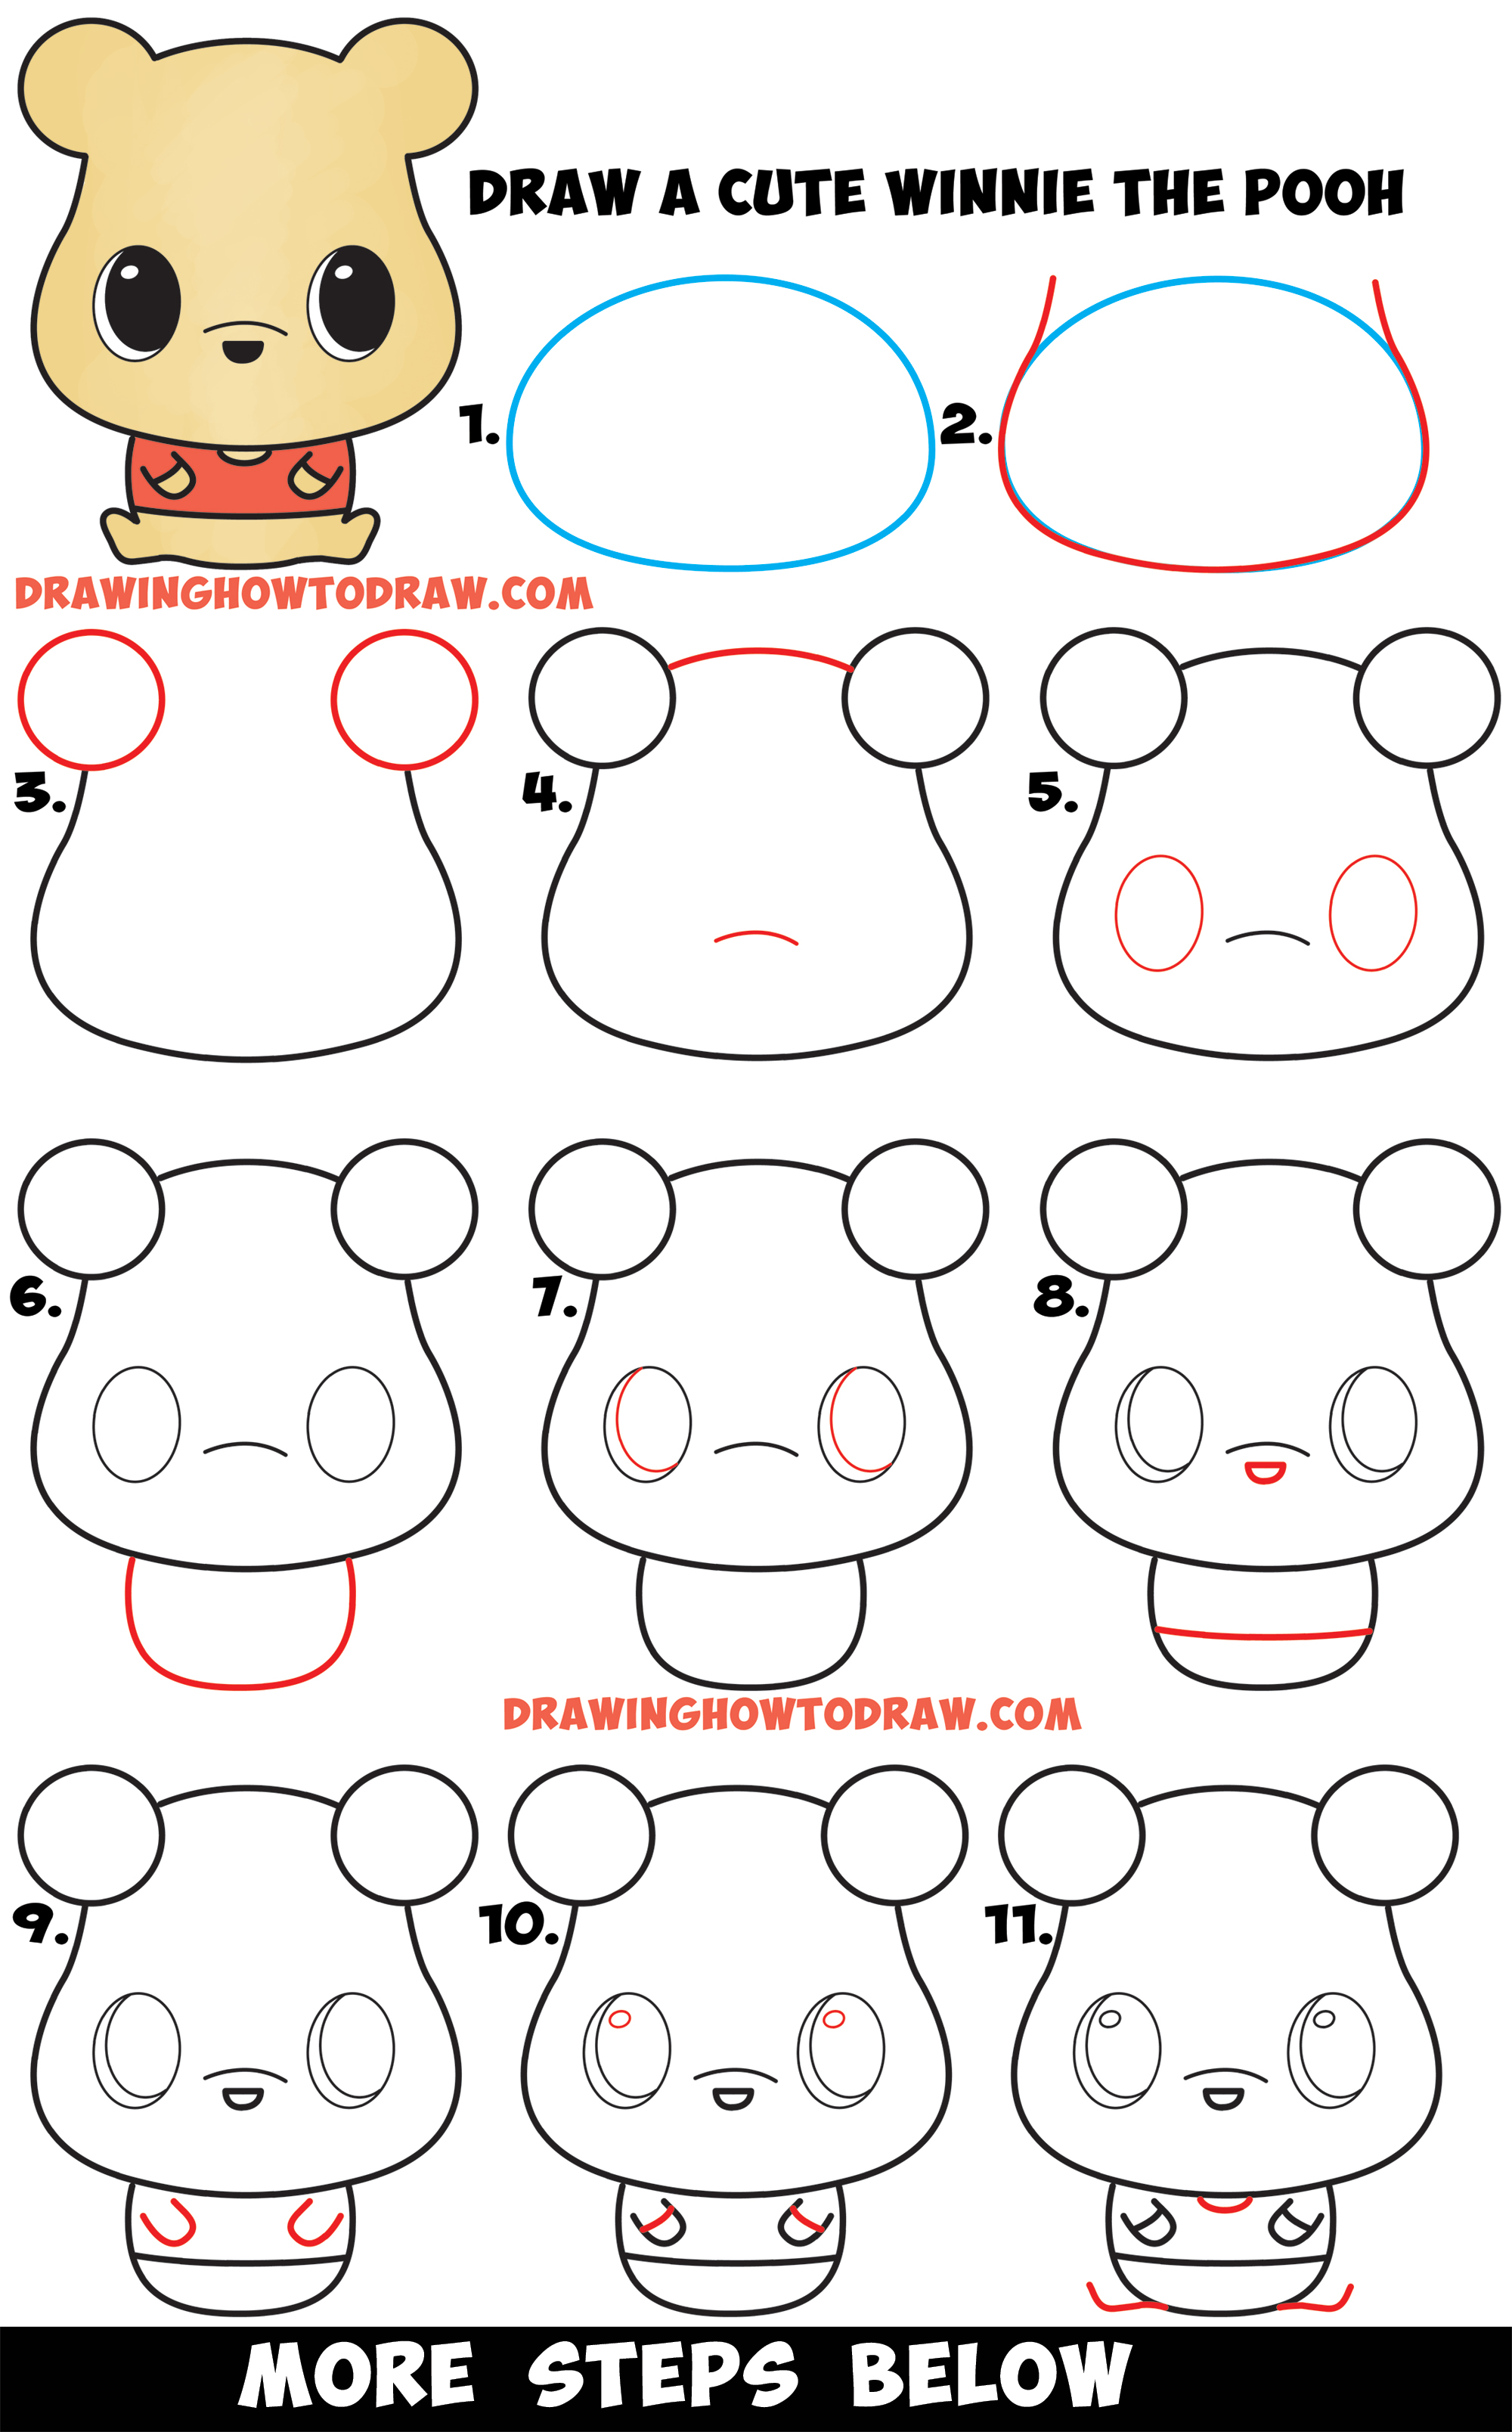 LearnHow to Draw a Cute Chibi / Kawaii Winnie The Pooh Easy Step by Step Drawing Tutorial for Beginners & Kids